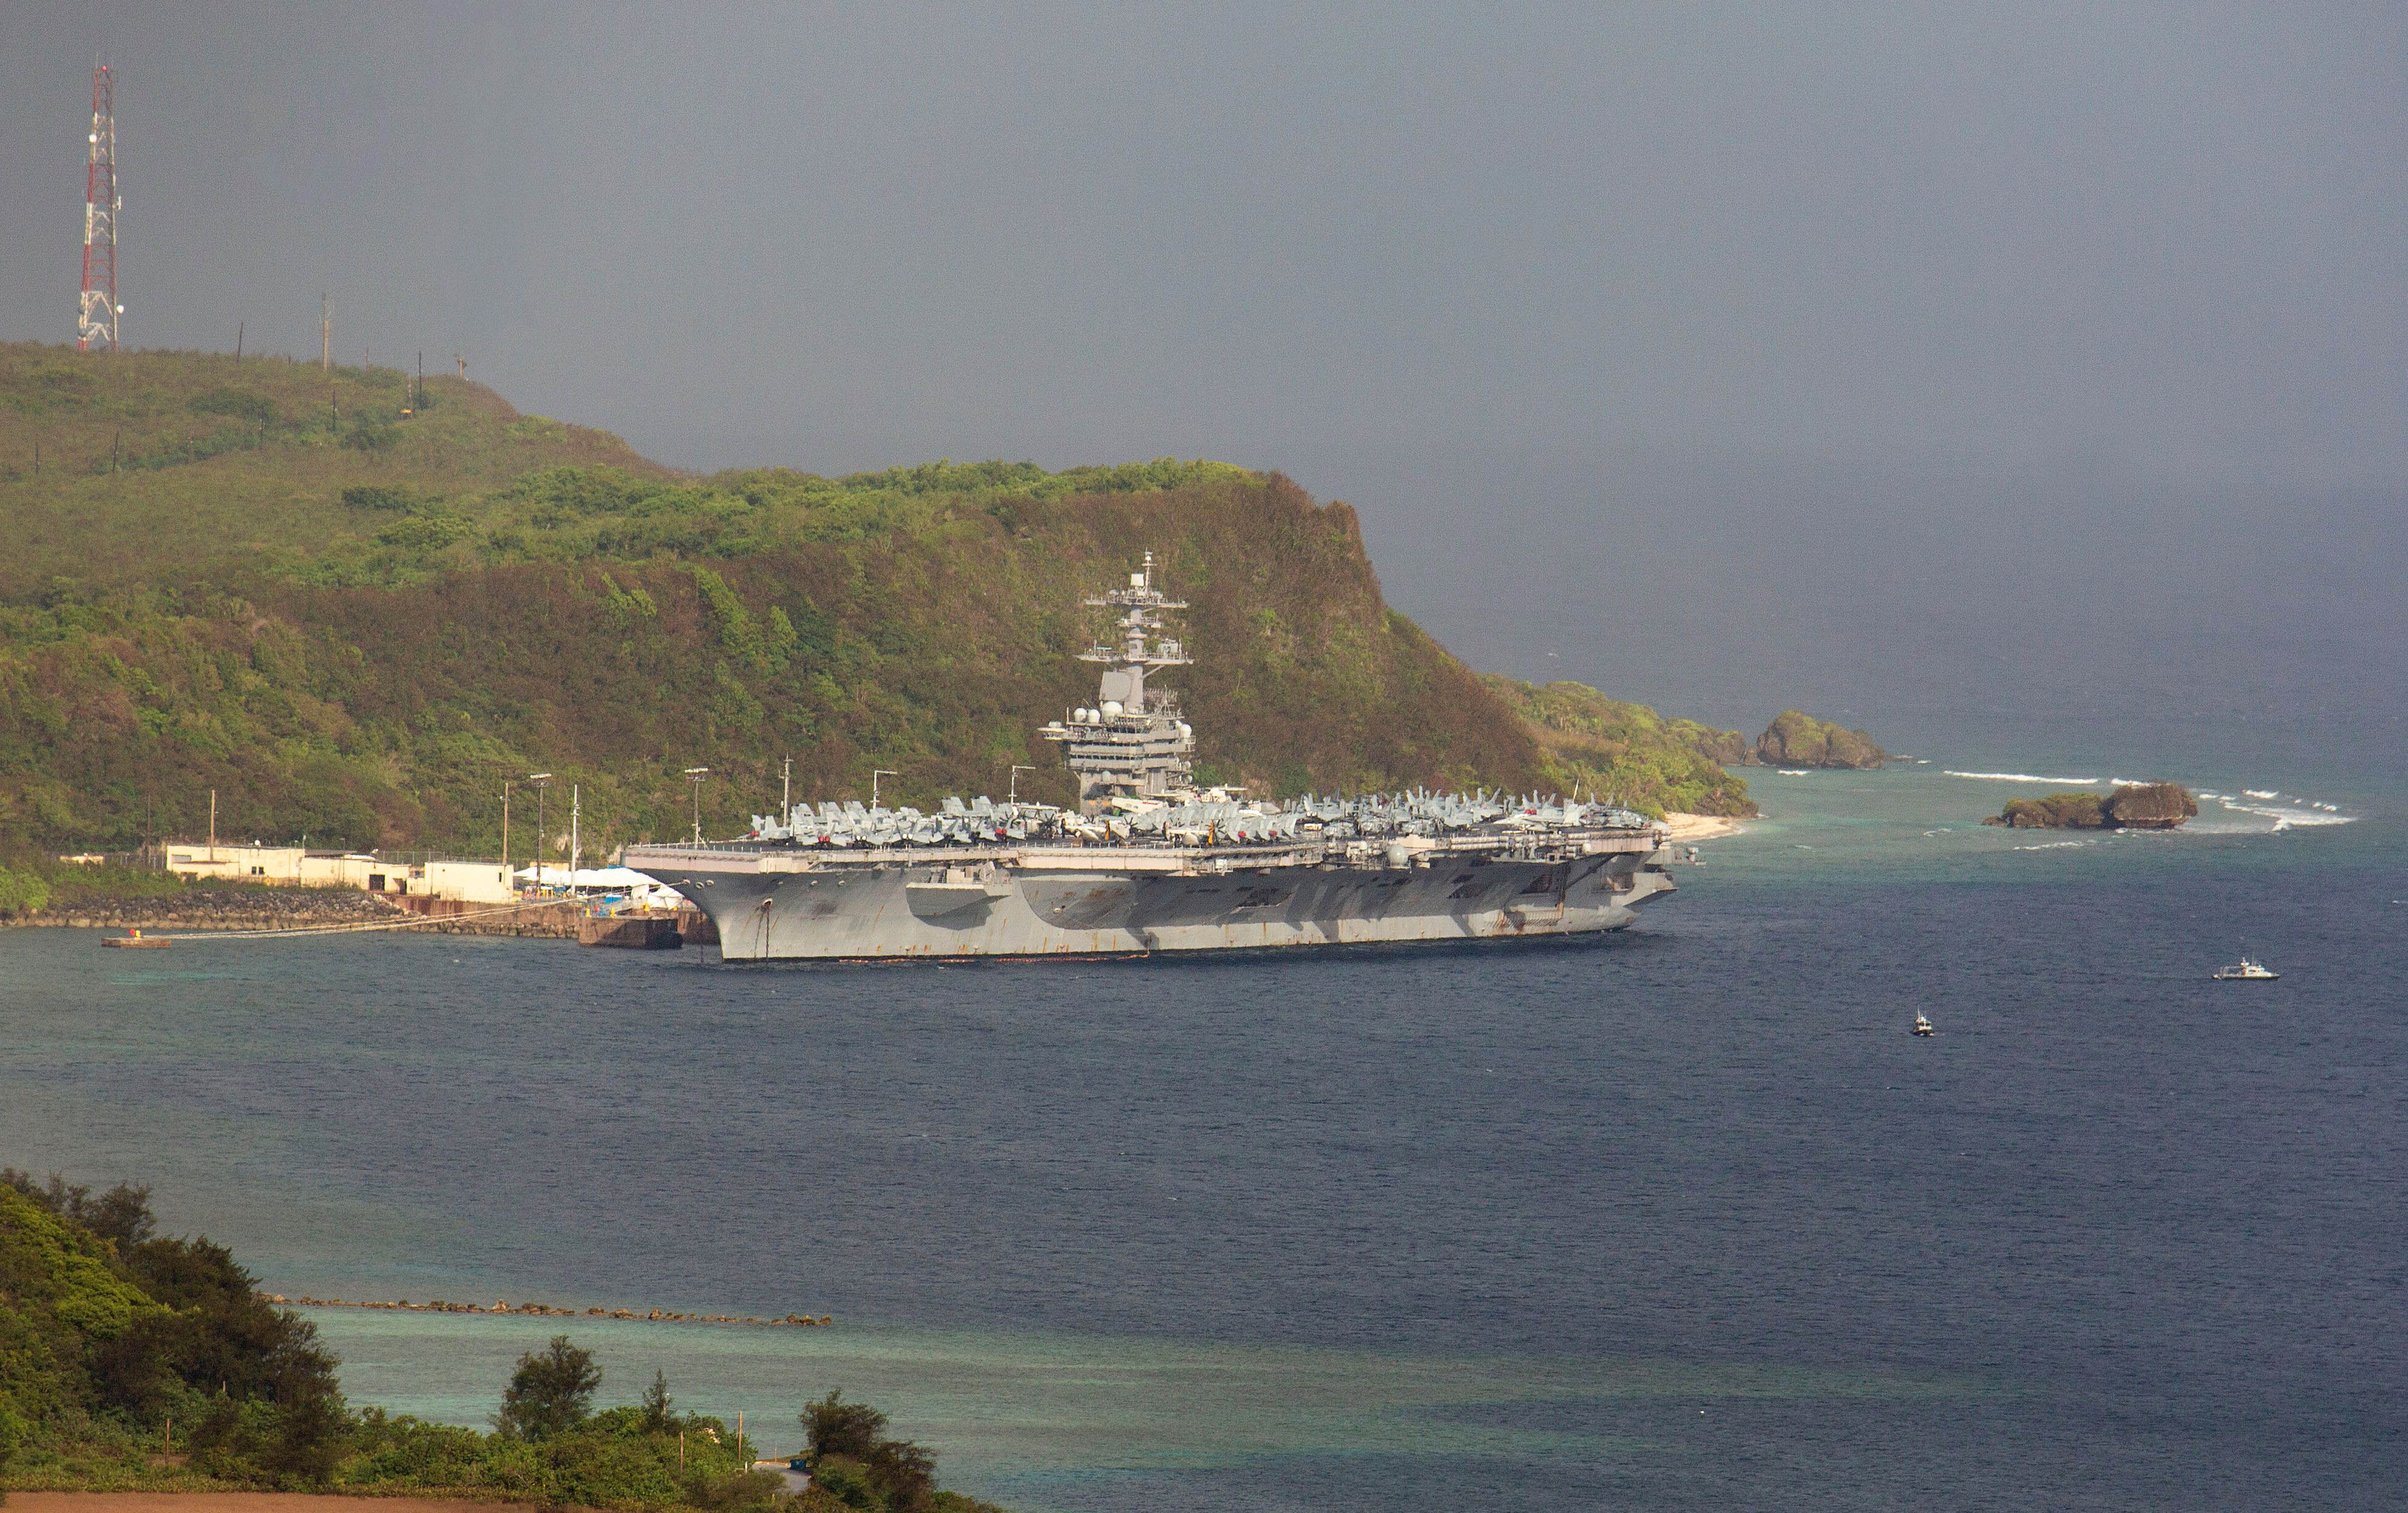 The aircraft carrier USS Theodore Roosevelt is docked at Naval Base Guam in Apra Harbor on April 27.